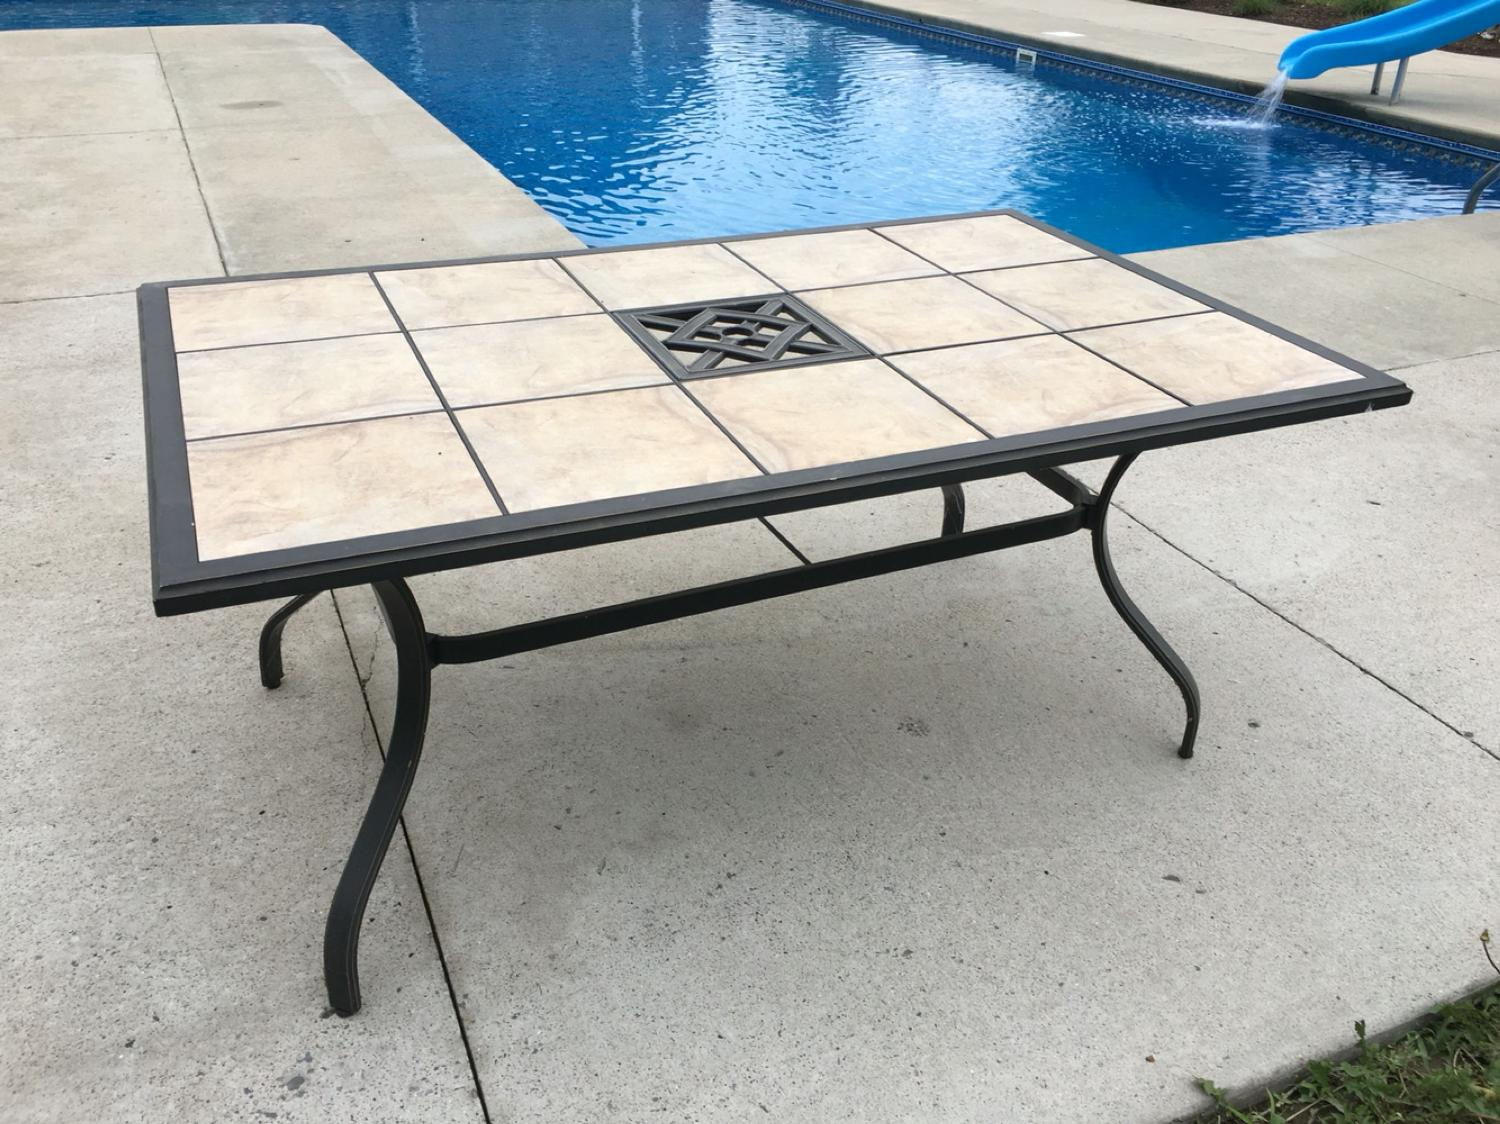 Find More 63x40x28 Patio Table With Removable Tiles Must